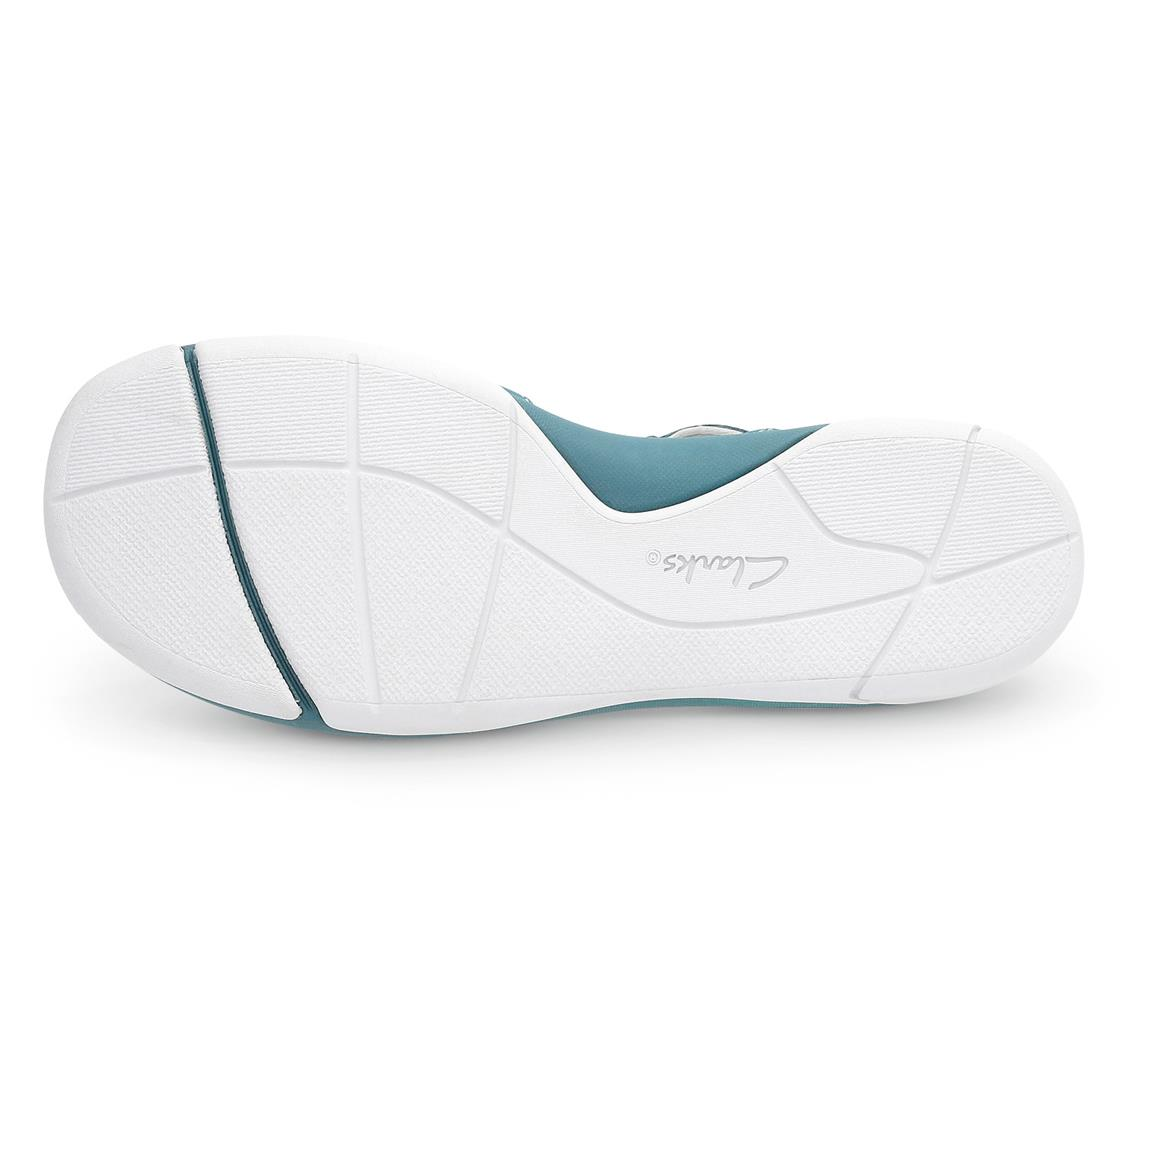 Cushioned soft dual-density footbed